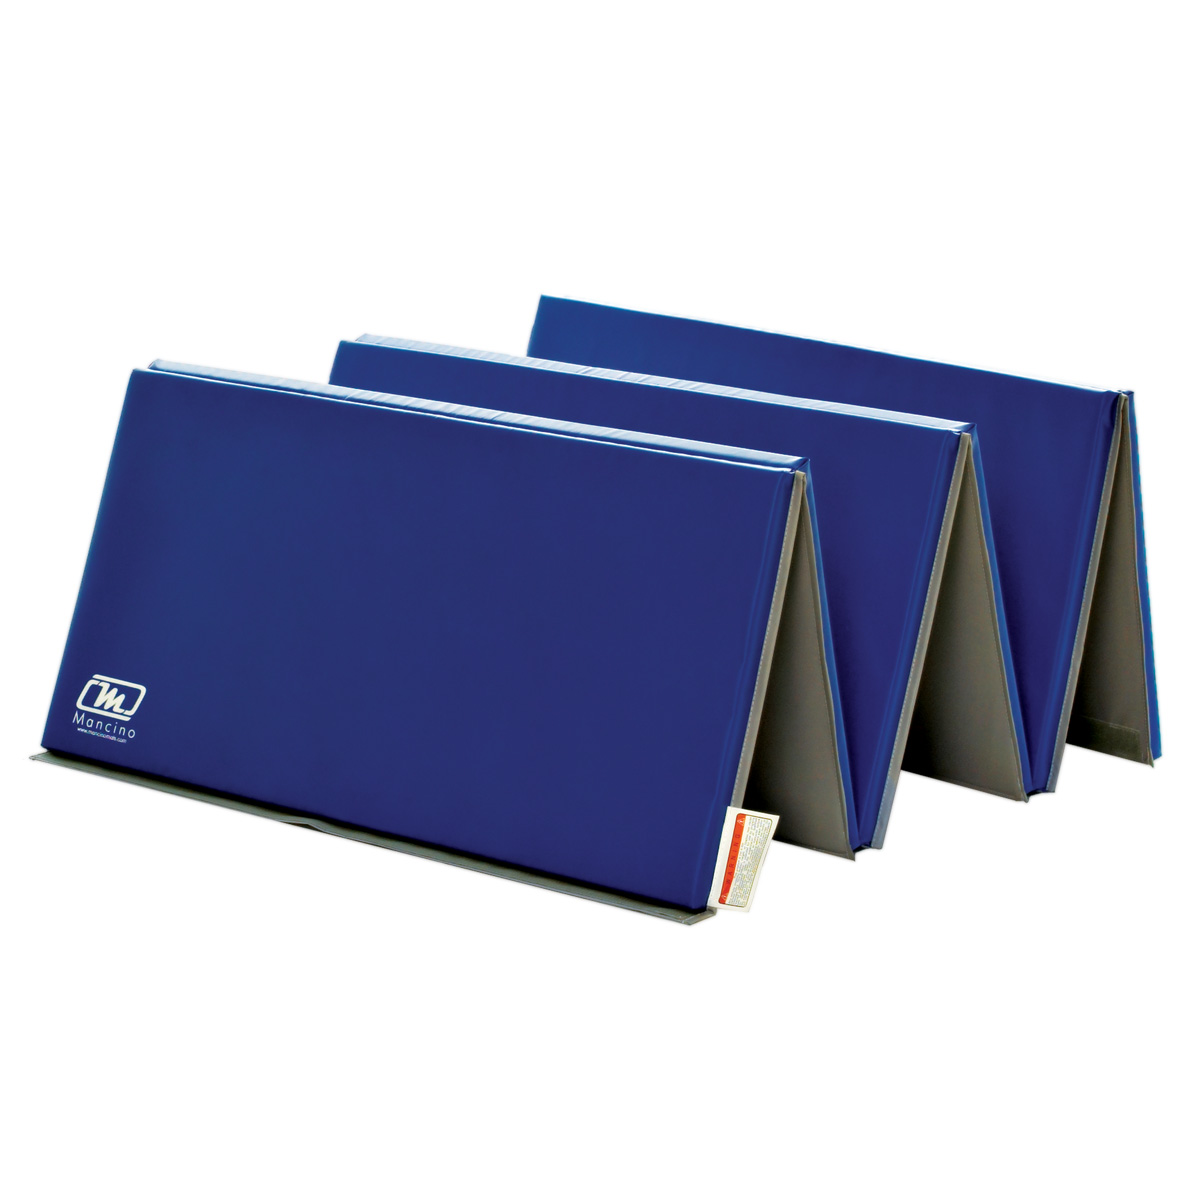 "1-3/8"" cross-linked royal blue folding panel mat"